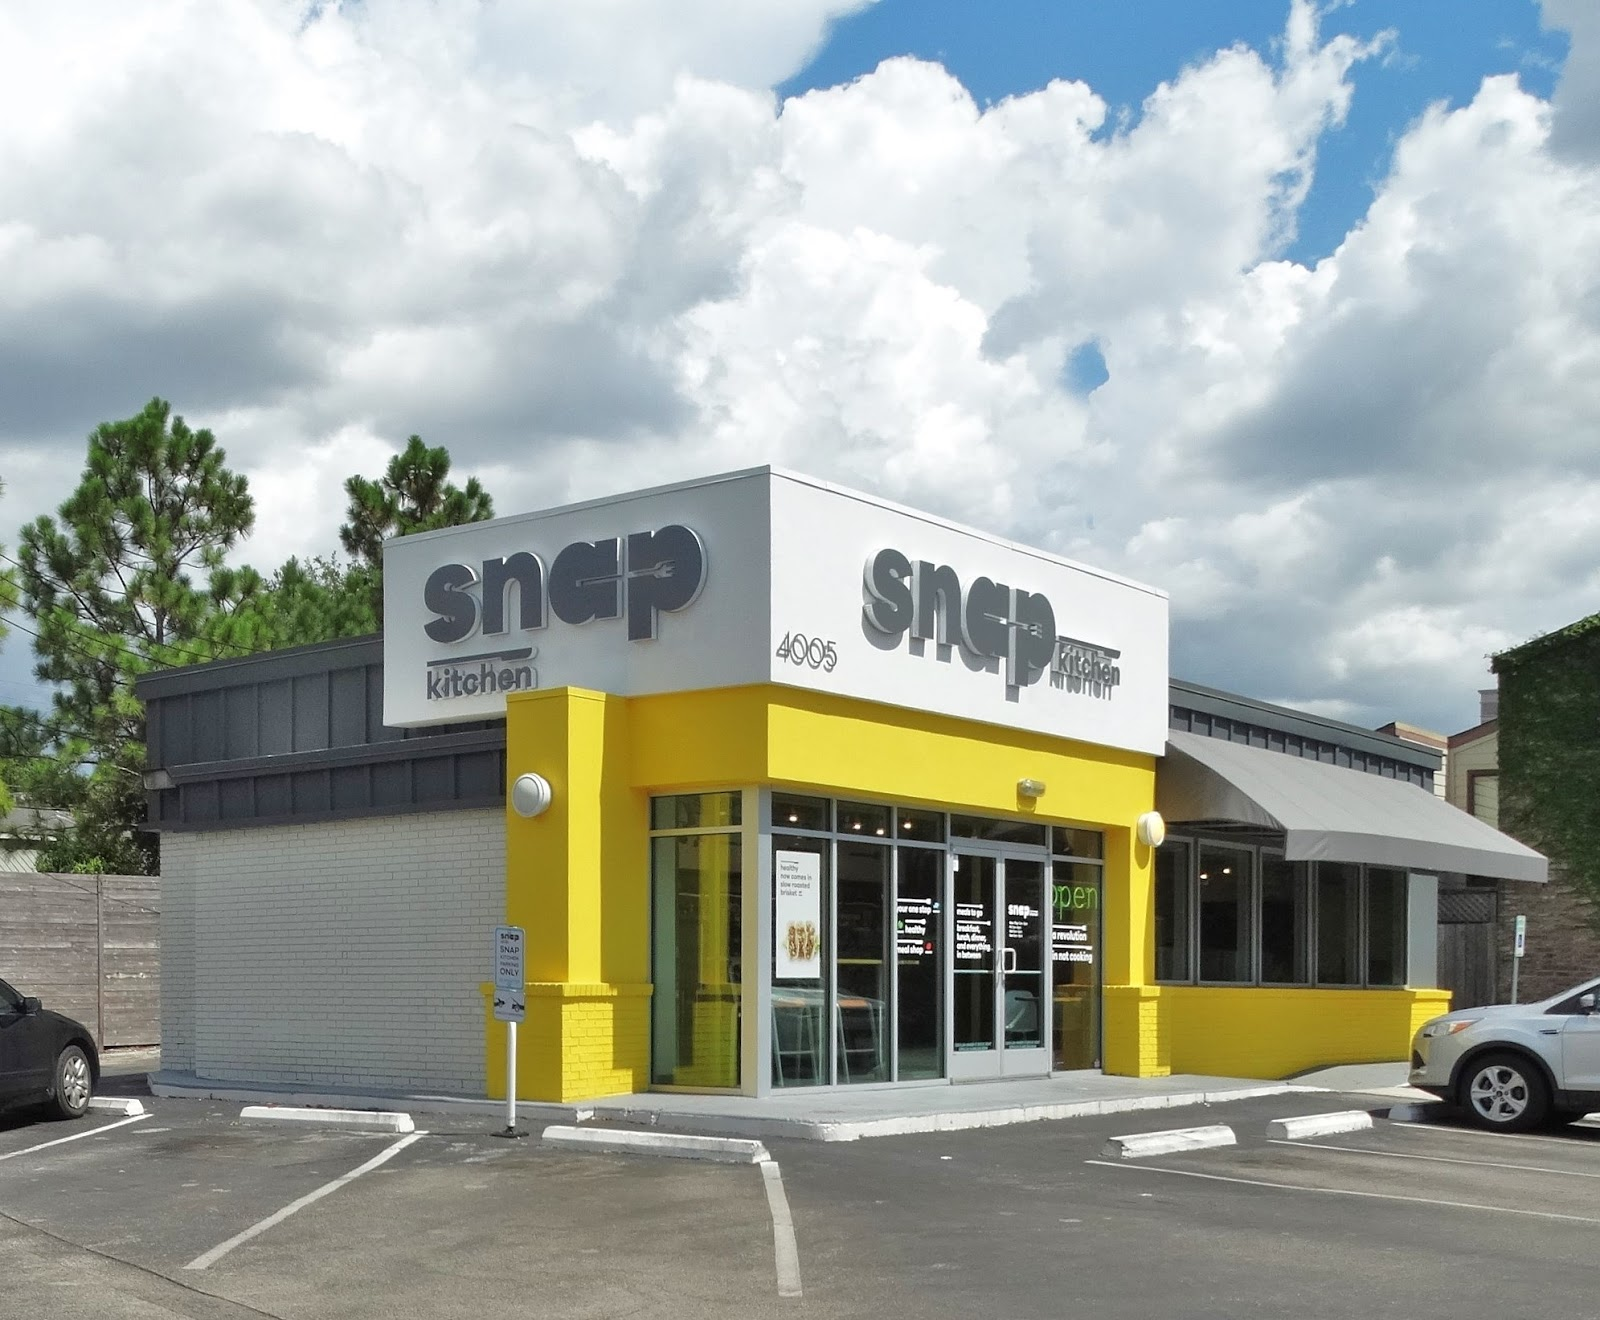 chamelion of a snap kitchen now turning gray | houston streetwise